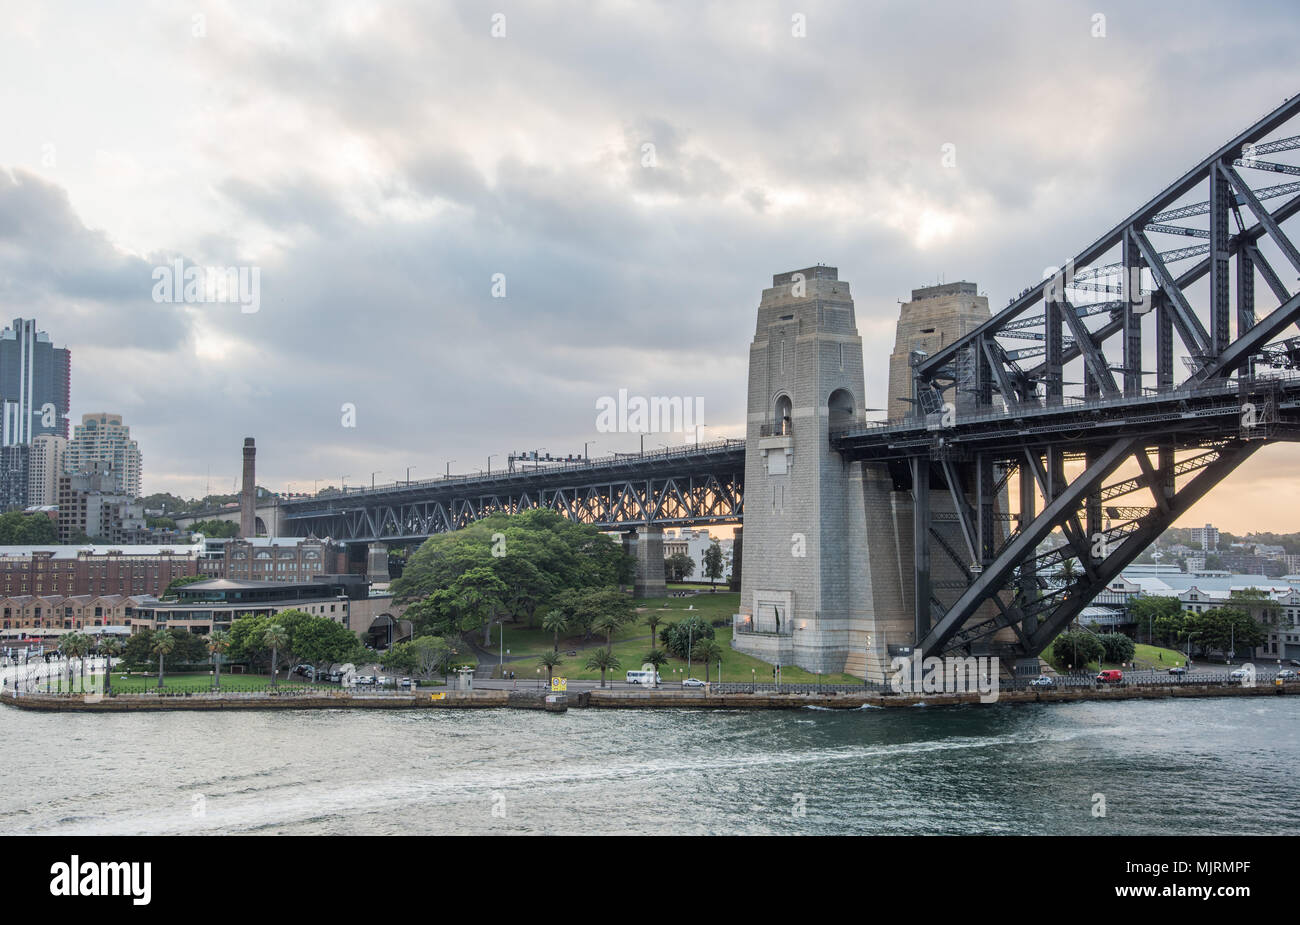 Sydney,NSW,Australia-December 7,2016: Sydney Harbour Bridge section with pylon lookout and waterfront area at sunset in Sydney, Australia Stock Photo